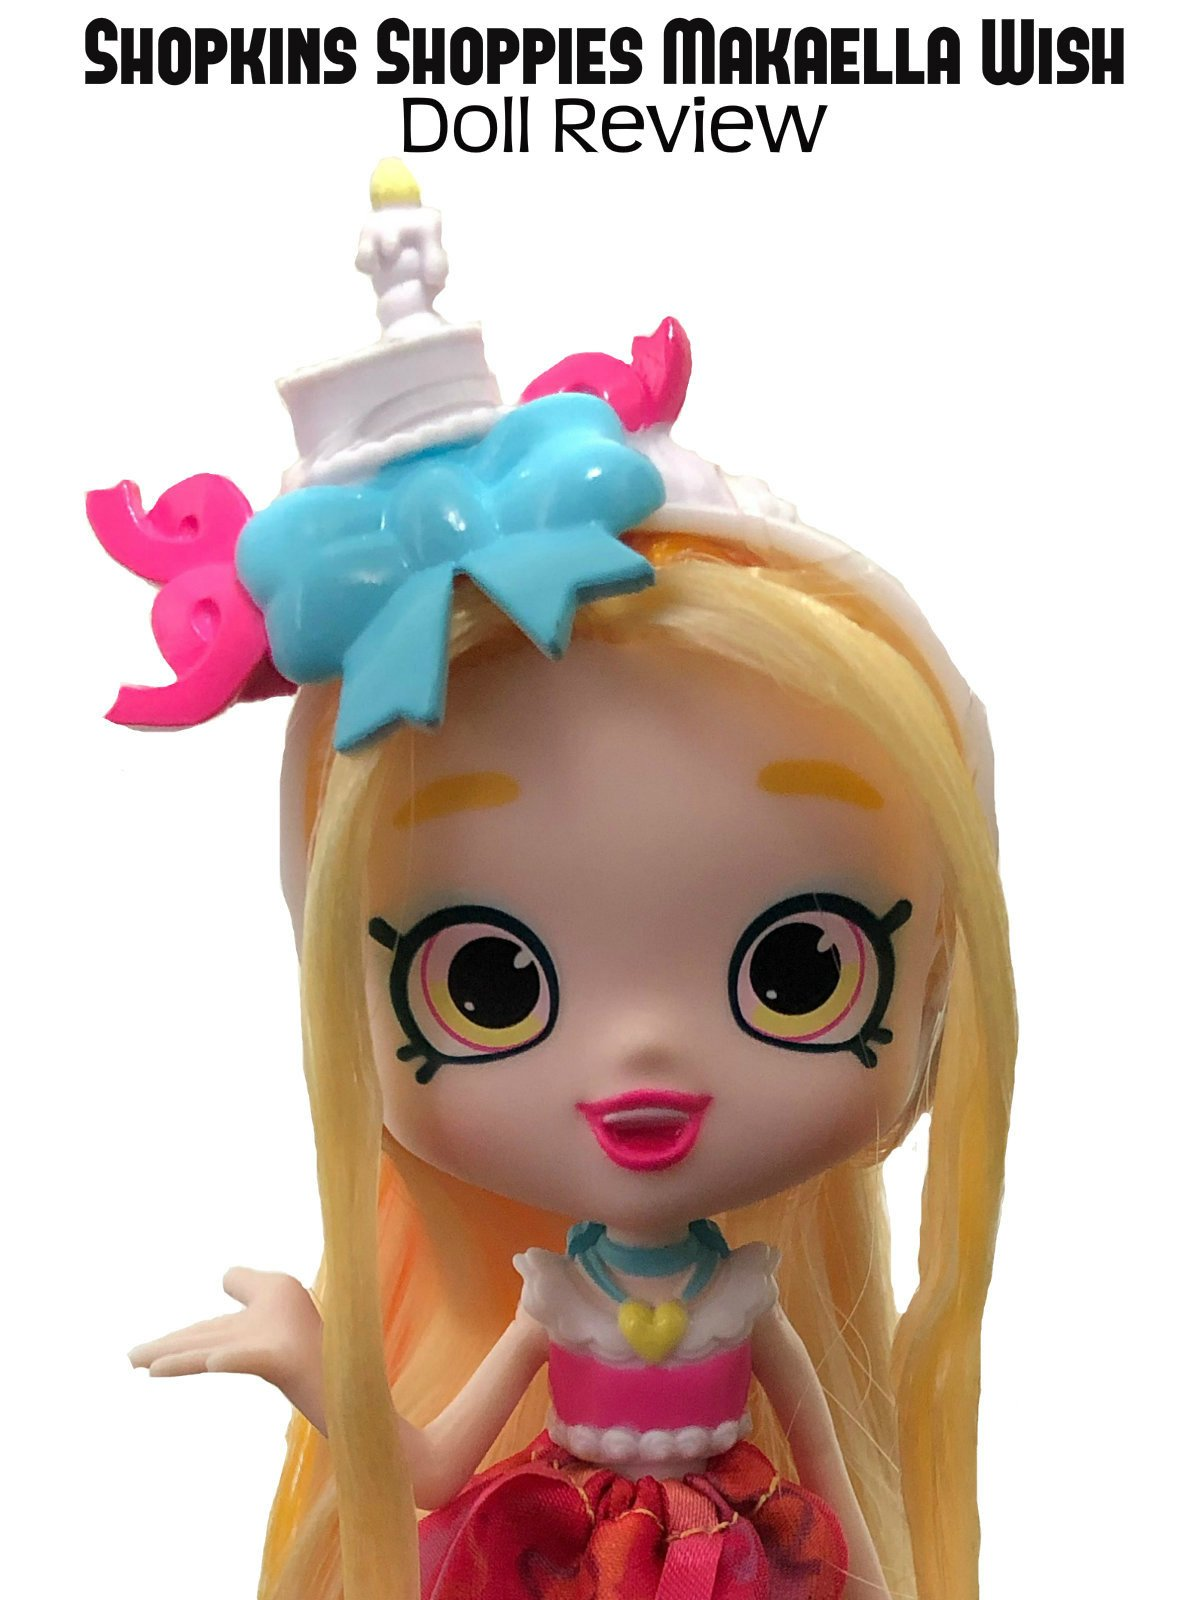 Review: Shopkins Shoppies Makaella Wish Doll Review